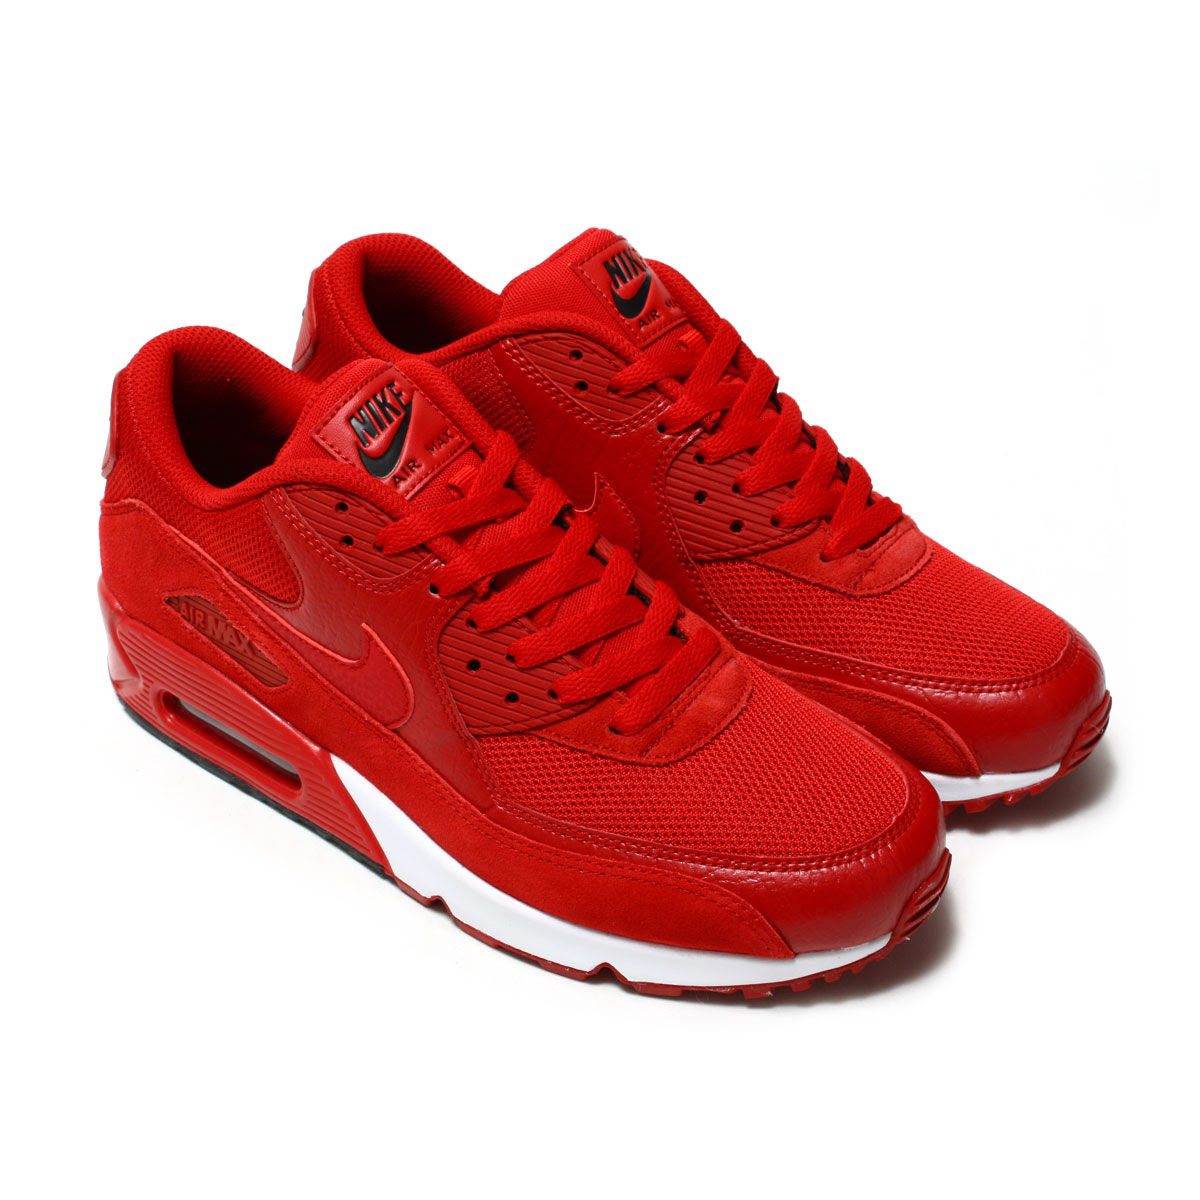 outlet store 78666 569d1 ... usa nike air max 90 essential kie ney amax 90 essential gym red gym red  black